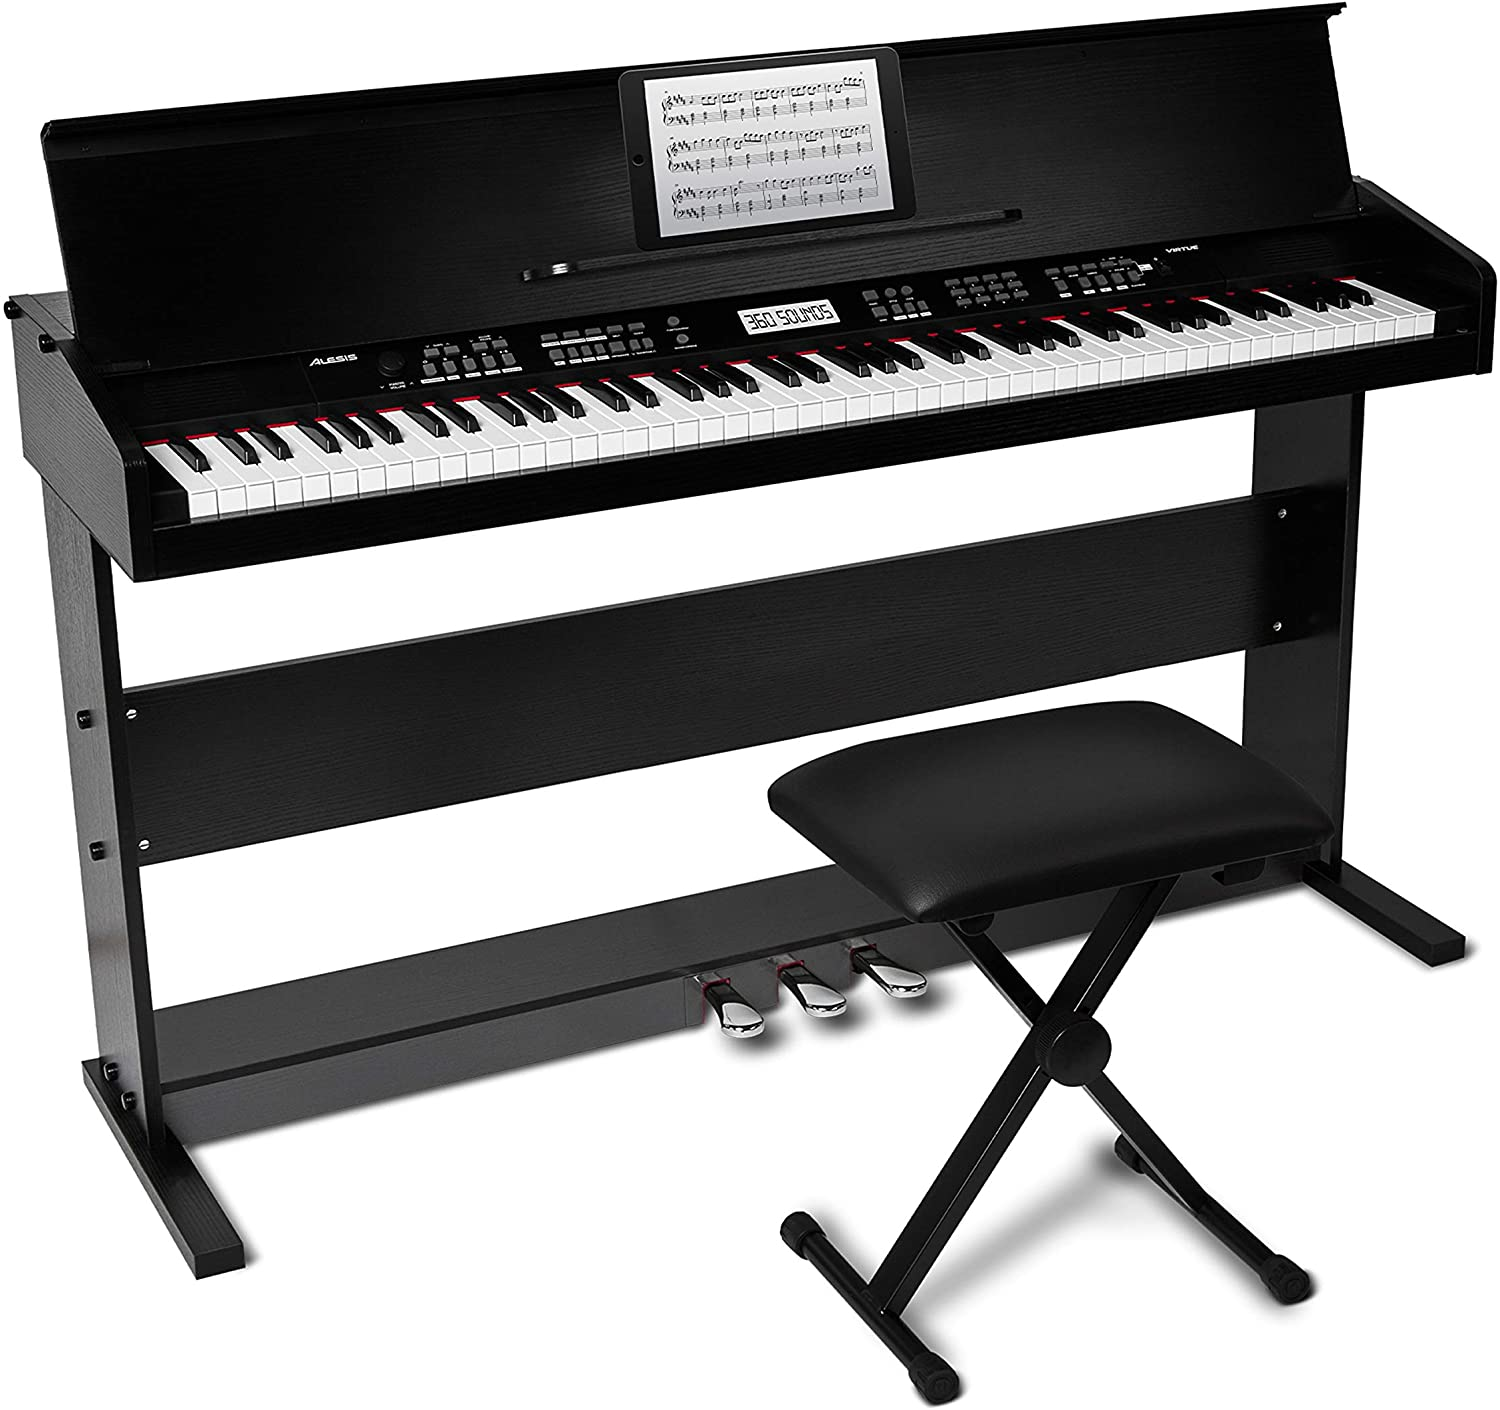 Amazon.com: Alesis Virtue | 88-Key Beginner Digital Piano with Full-Size  Velocity-Sensitive Keys, Lesson Mode, Power Supply, Built-In Speakers, 360  Premium Voices and 3 Months of Skoove Lessons Included: Musical Instruments